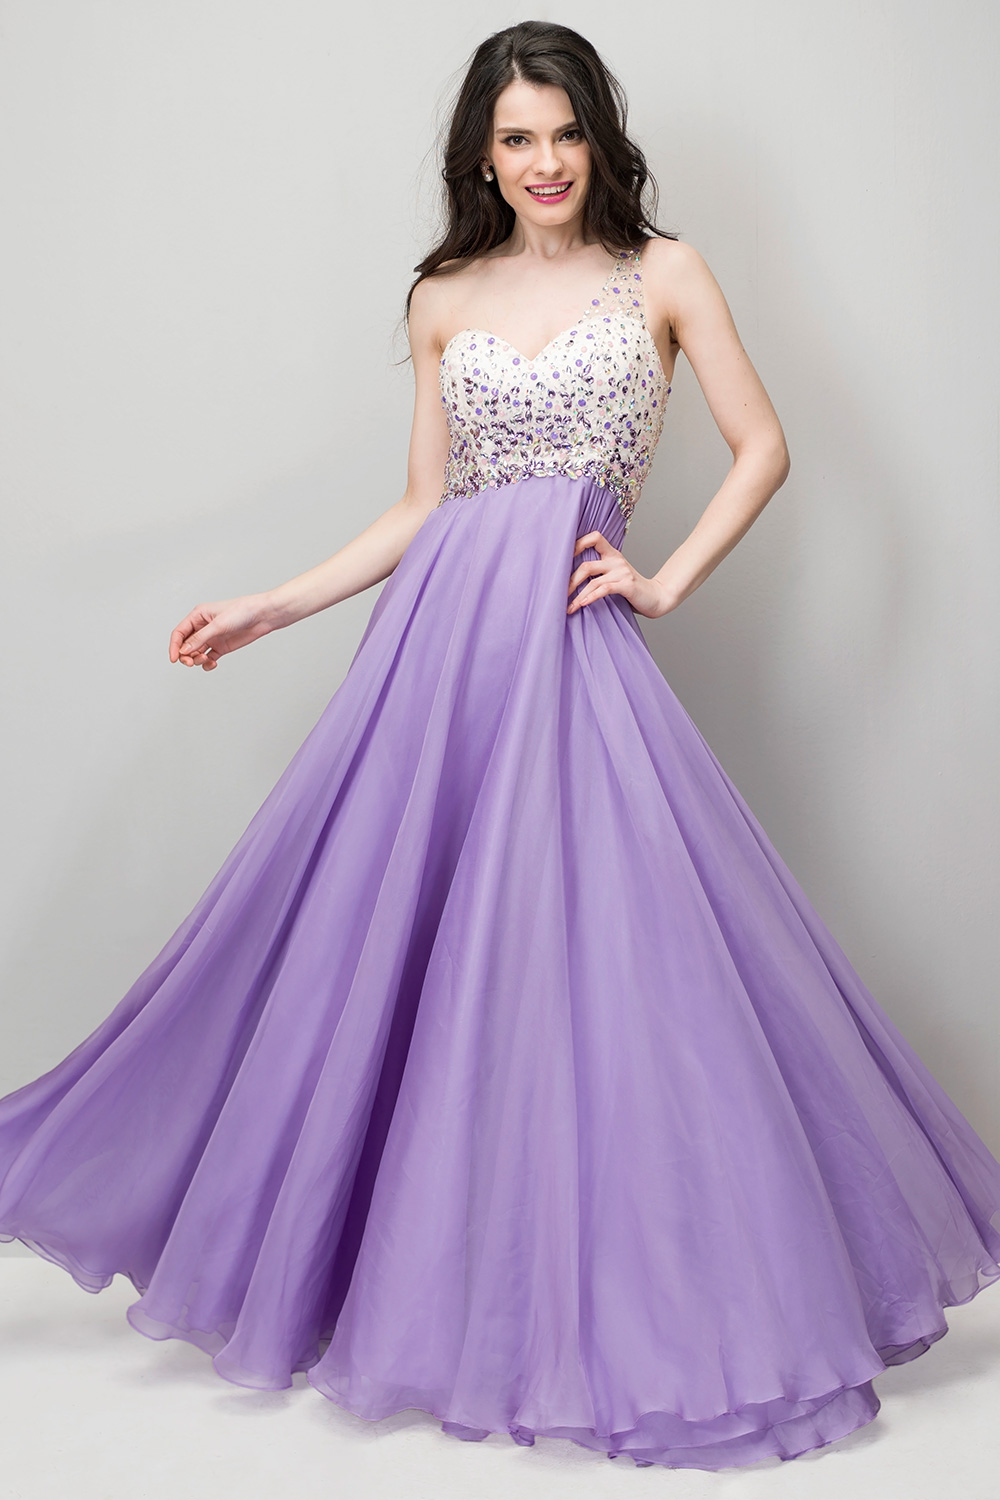 Wedding Lilac Prom Dresses collection lilac prom dresses pictures fashion trends and models purple ocodea com